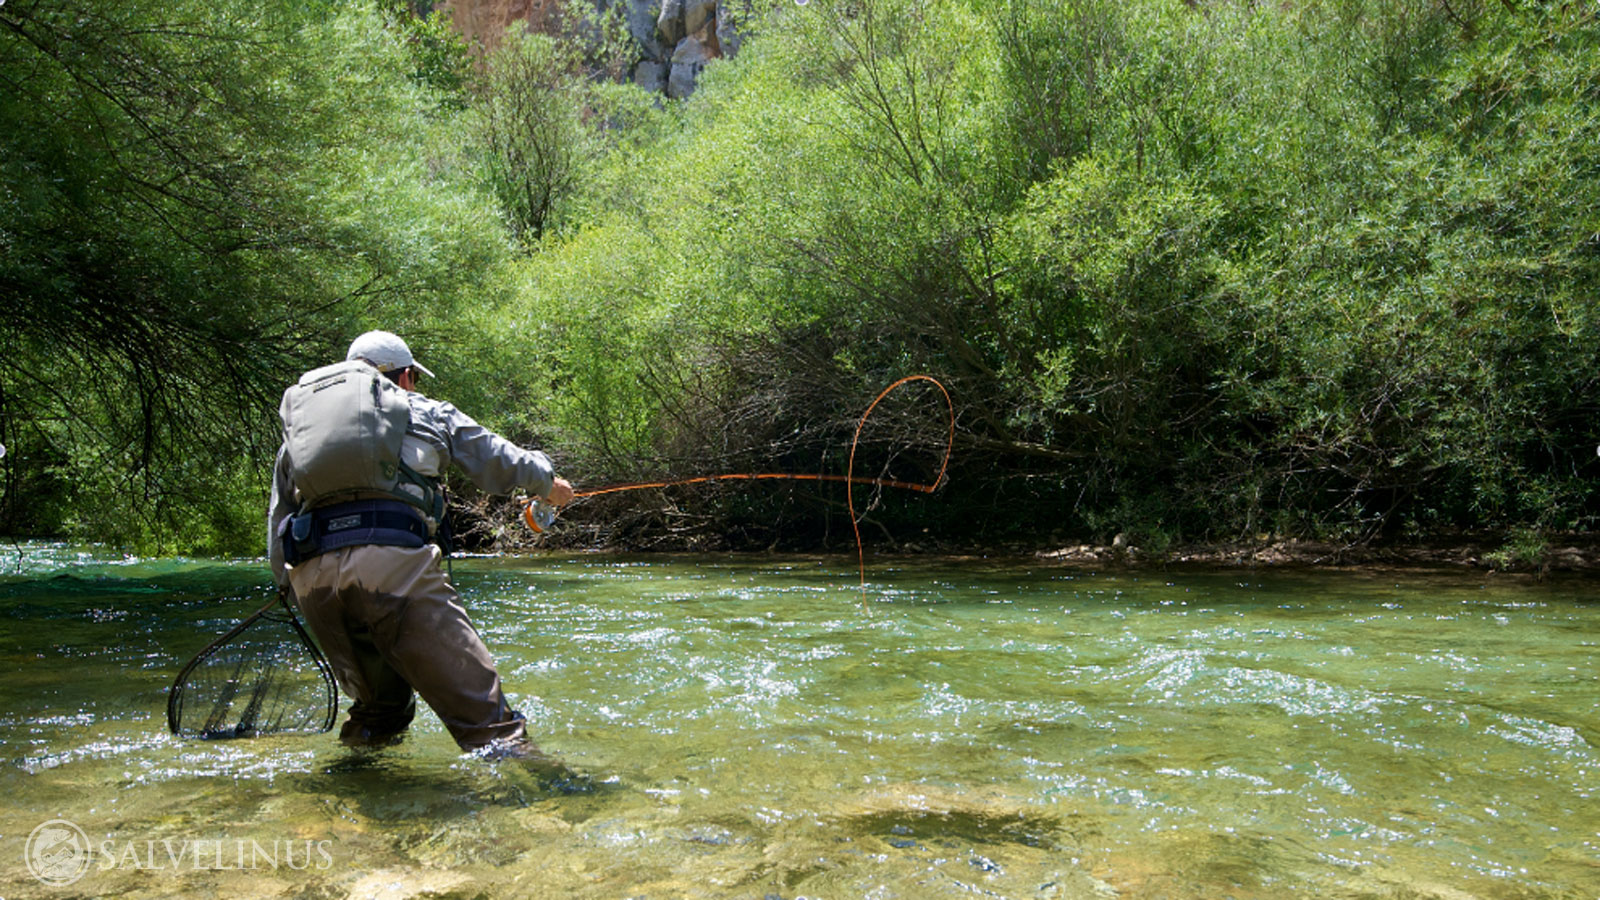 Orvis fly fishing wallpaper wallpapersafari fly fishing wallpaper fly fishing school in spain voltagebd Image collections